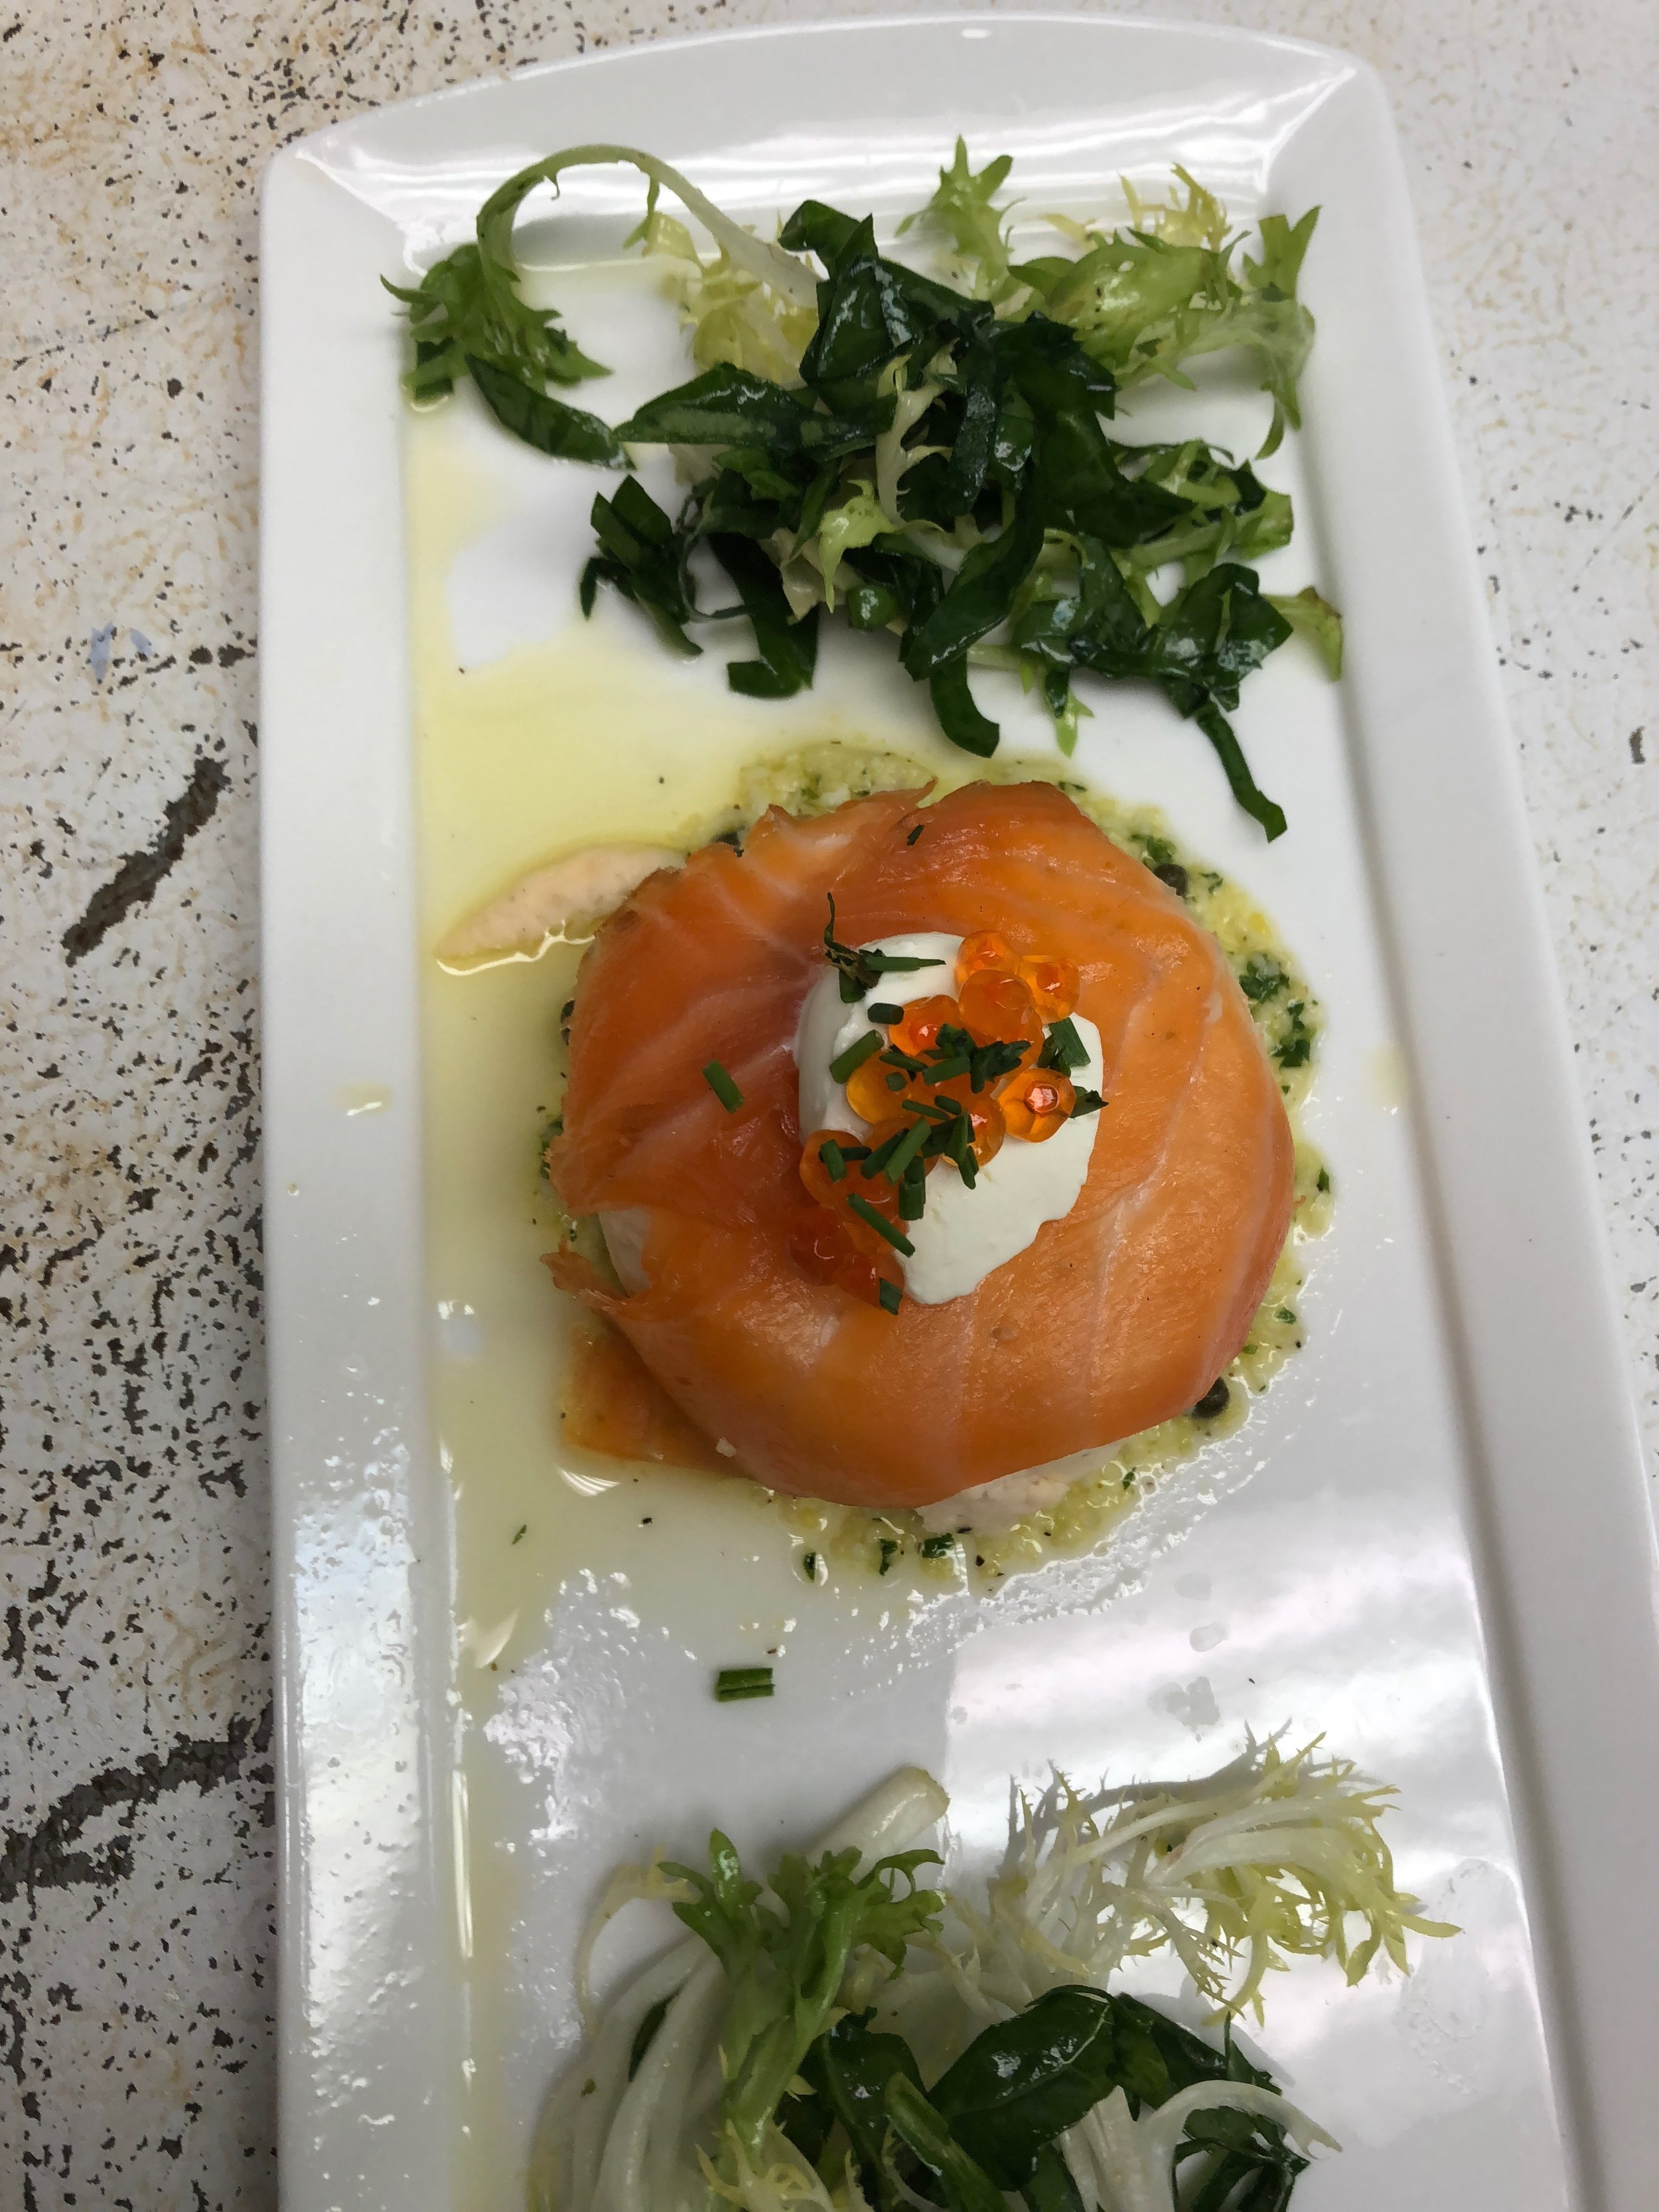 Smoked salmon and frisée spinach salad in hazelnut dressing.